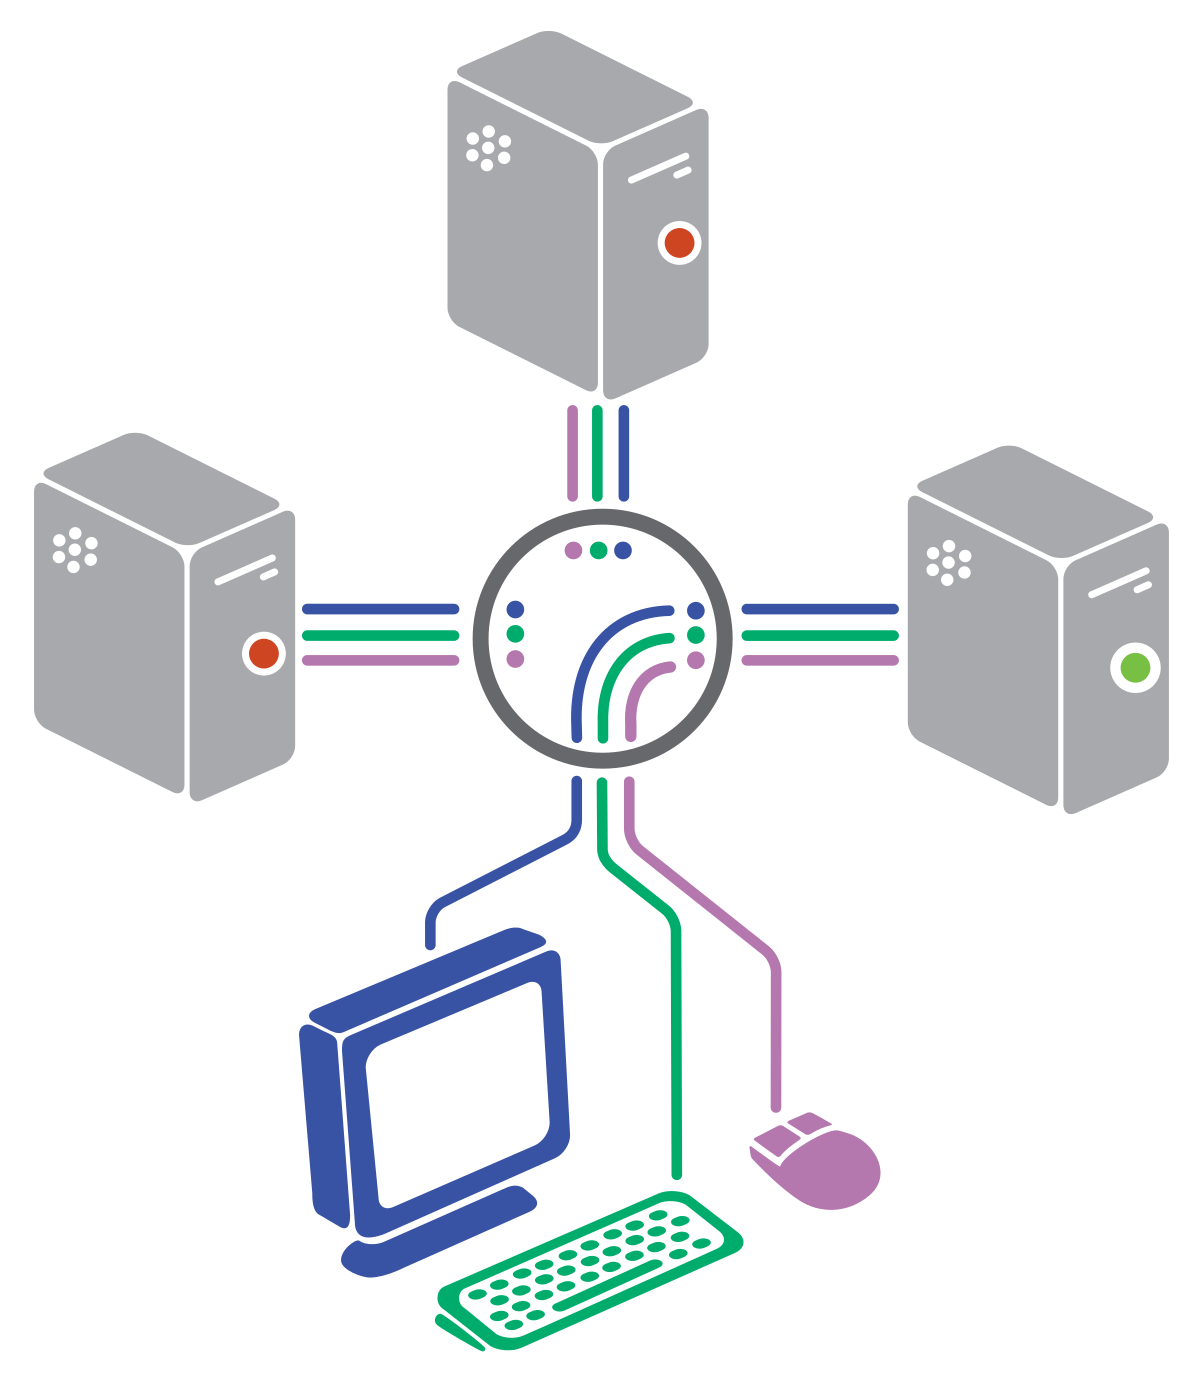 Kvm switch wikipedia . Network clipart multiple computer